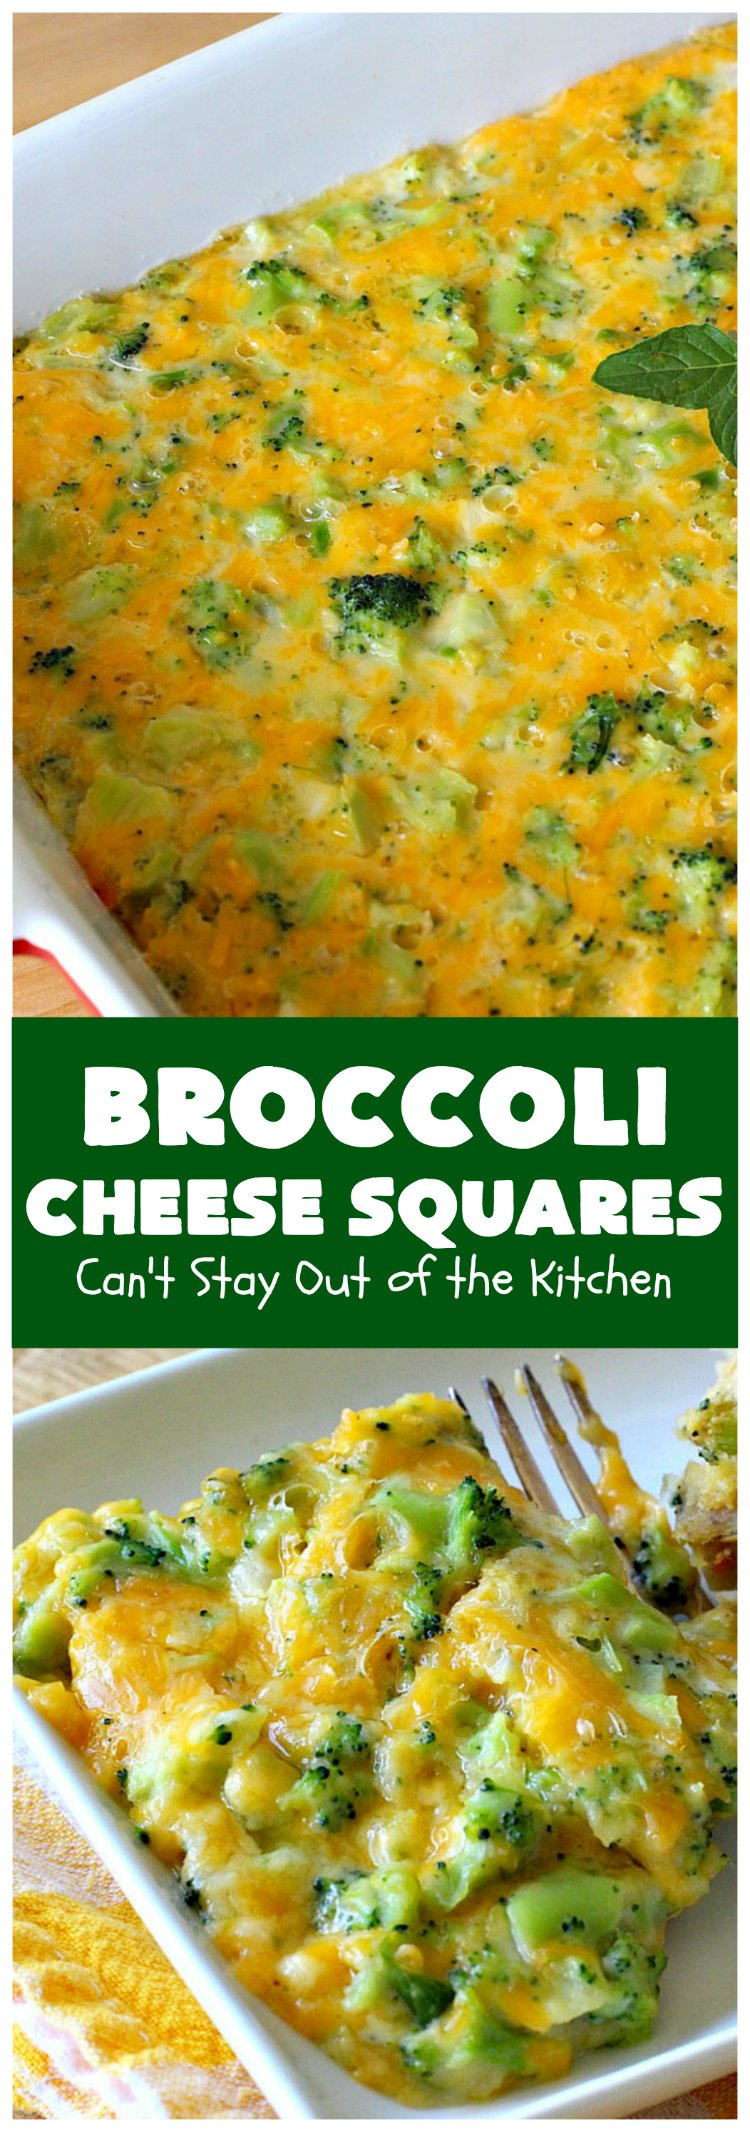 Broccoli Cheese Squares | Can't Stay Out of the Kitchen